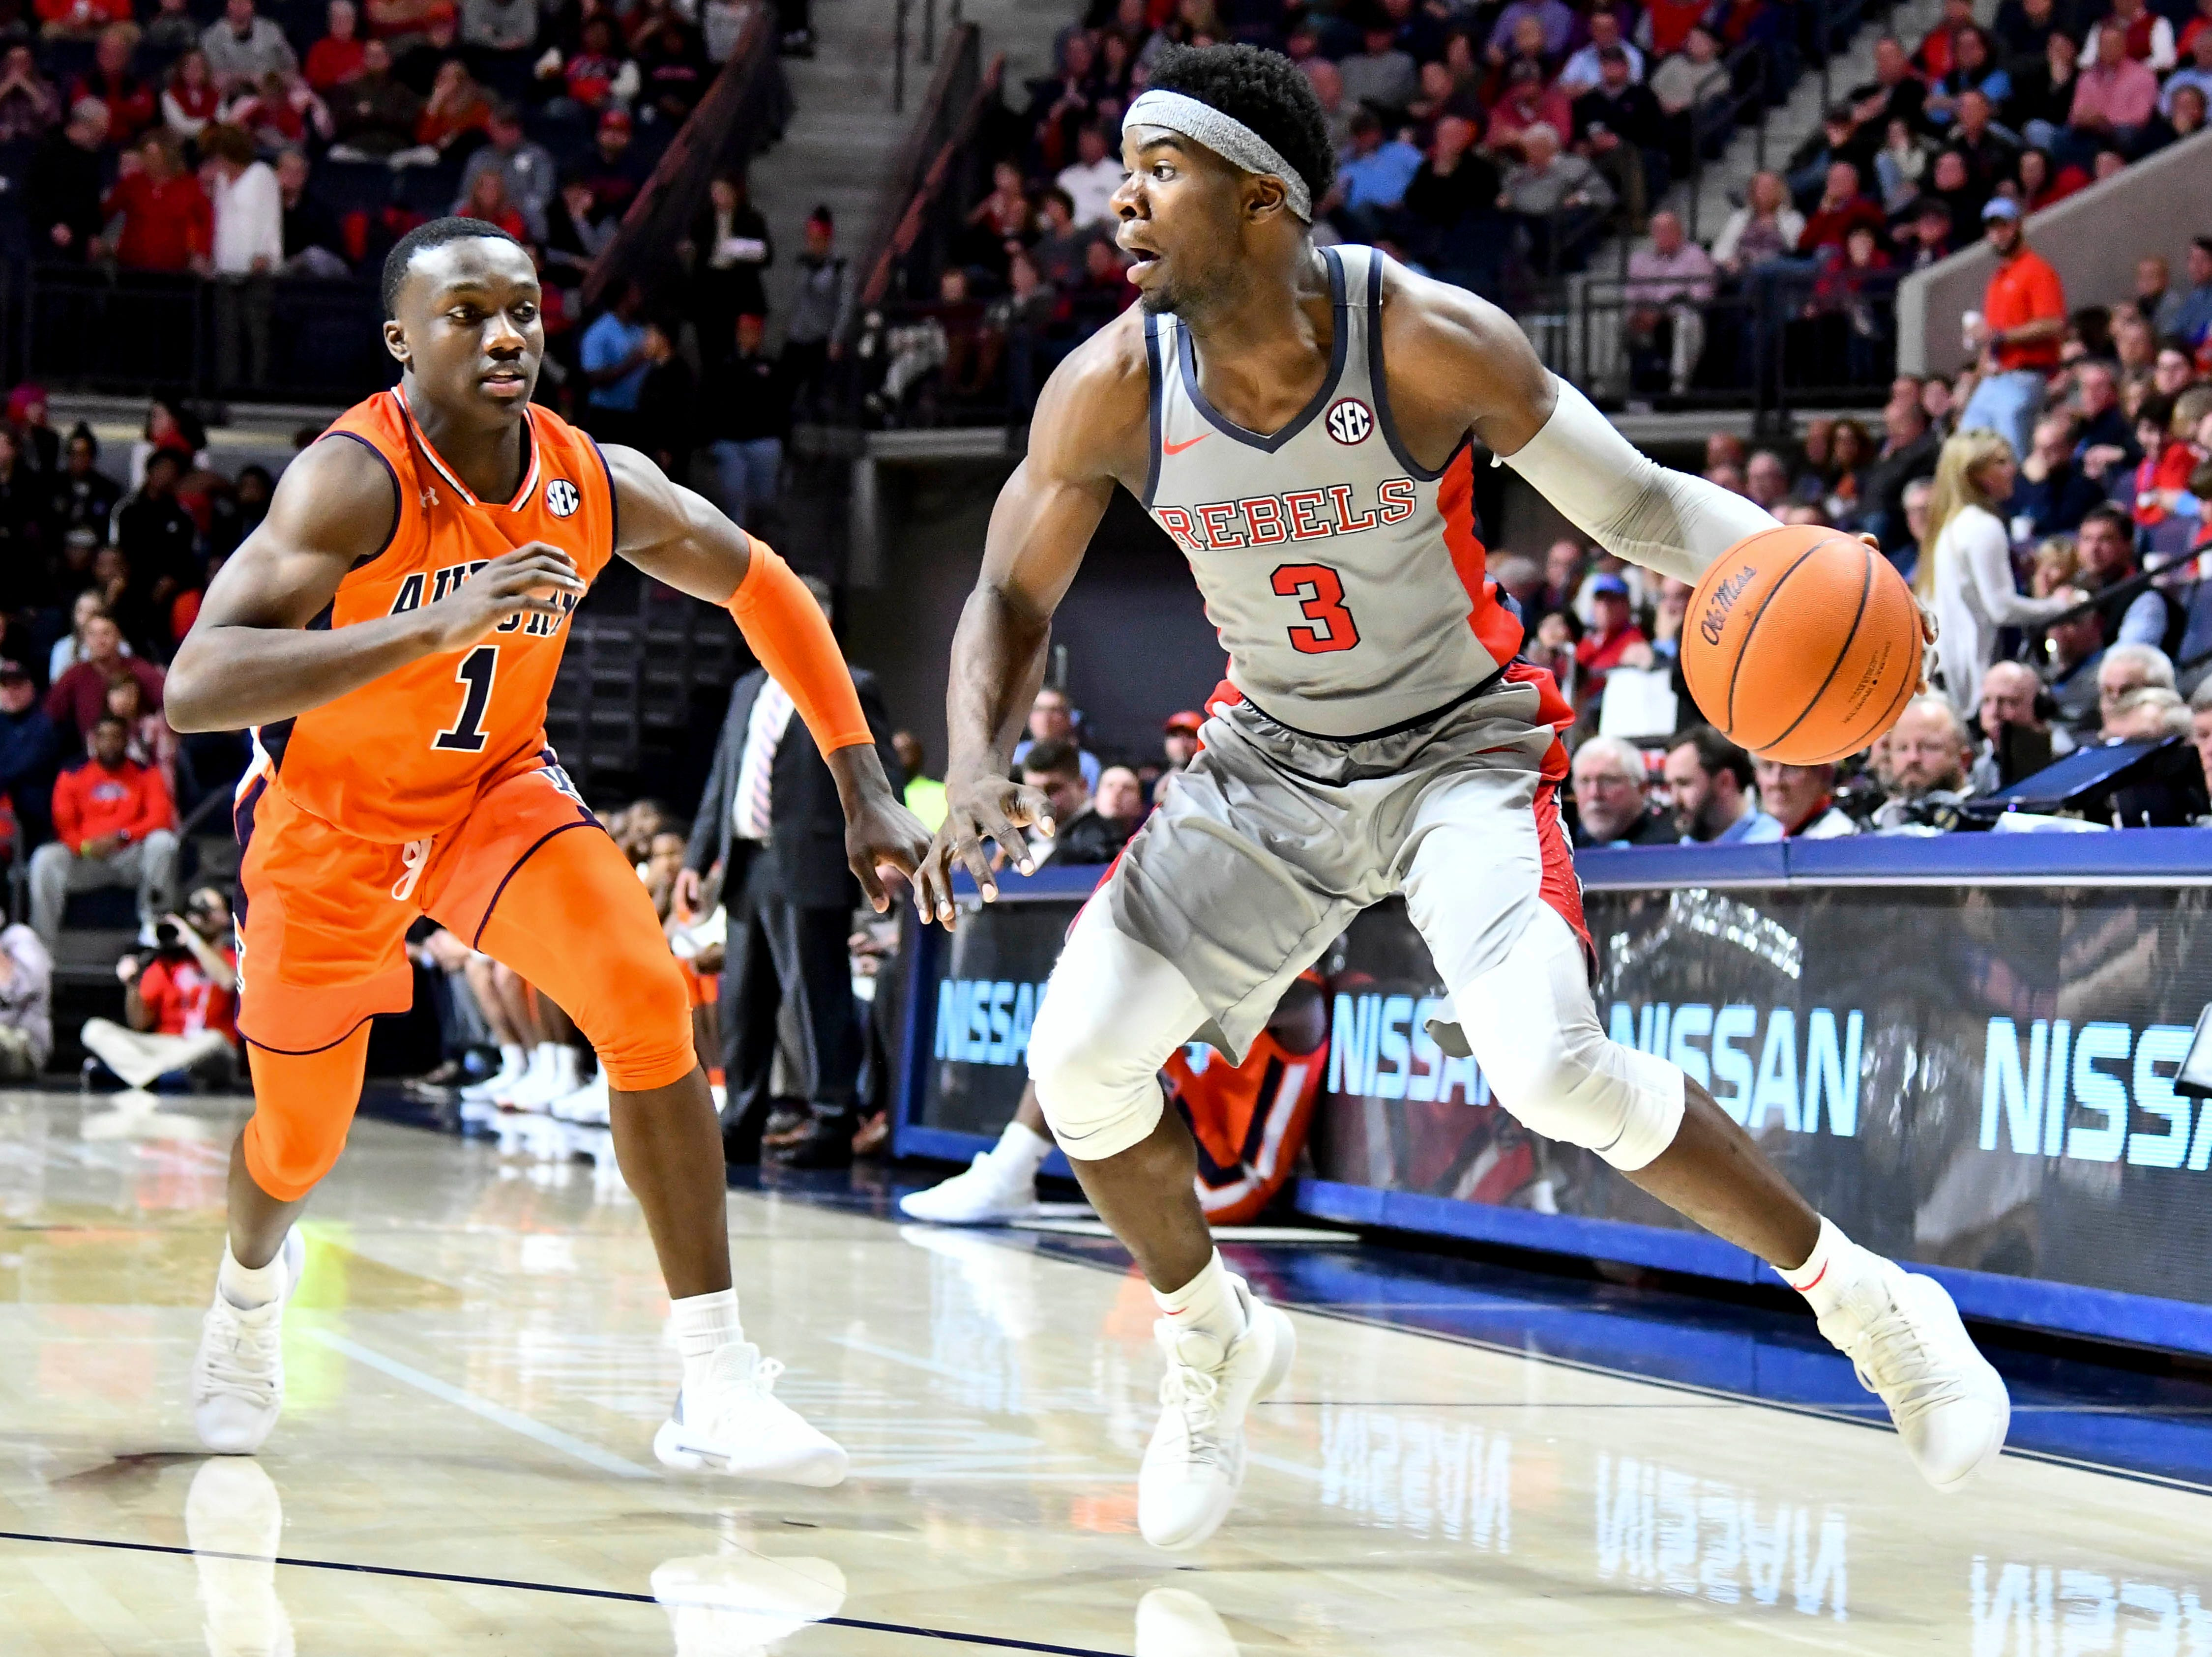 Jan 9, 2019; Oxford, MS, USA; Mississippi Rebels guard Terence Davis (3) handles the ball defended by Auburn Tigers guard Jared Harper (1) during the second half at The Pavilion at Ole Miss. Mandatory Credit: Matt Bush-USA TODAY Sports